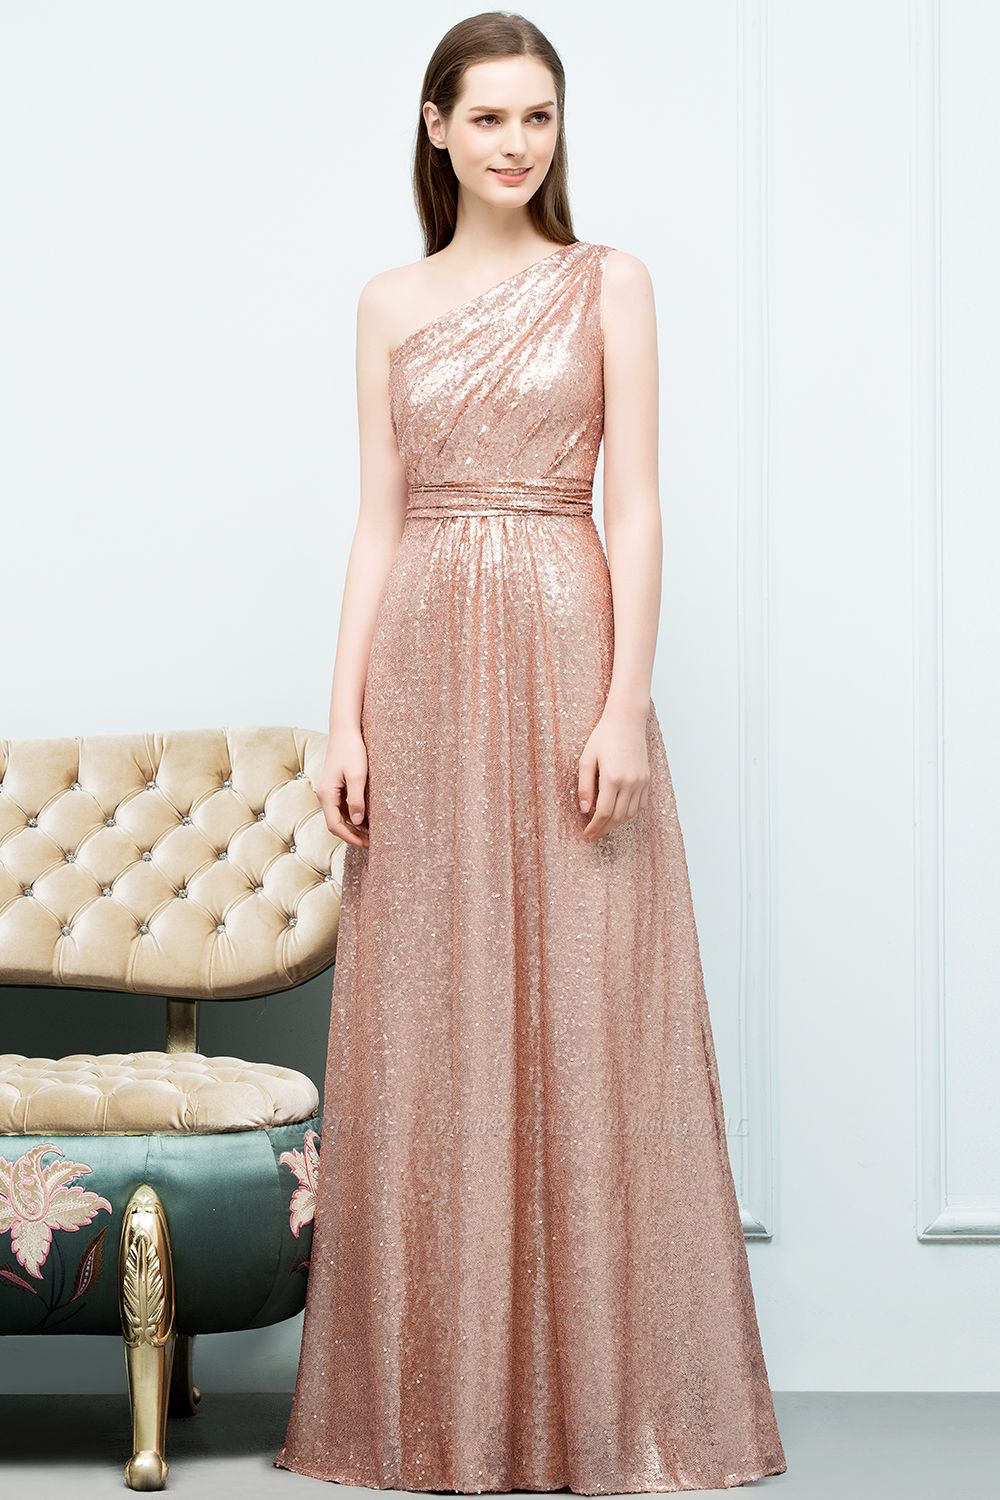 Gorgeous Sequined One-shoulder Bridesmaid Dress with Ruffles